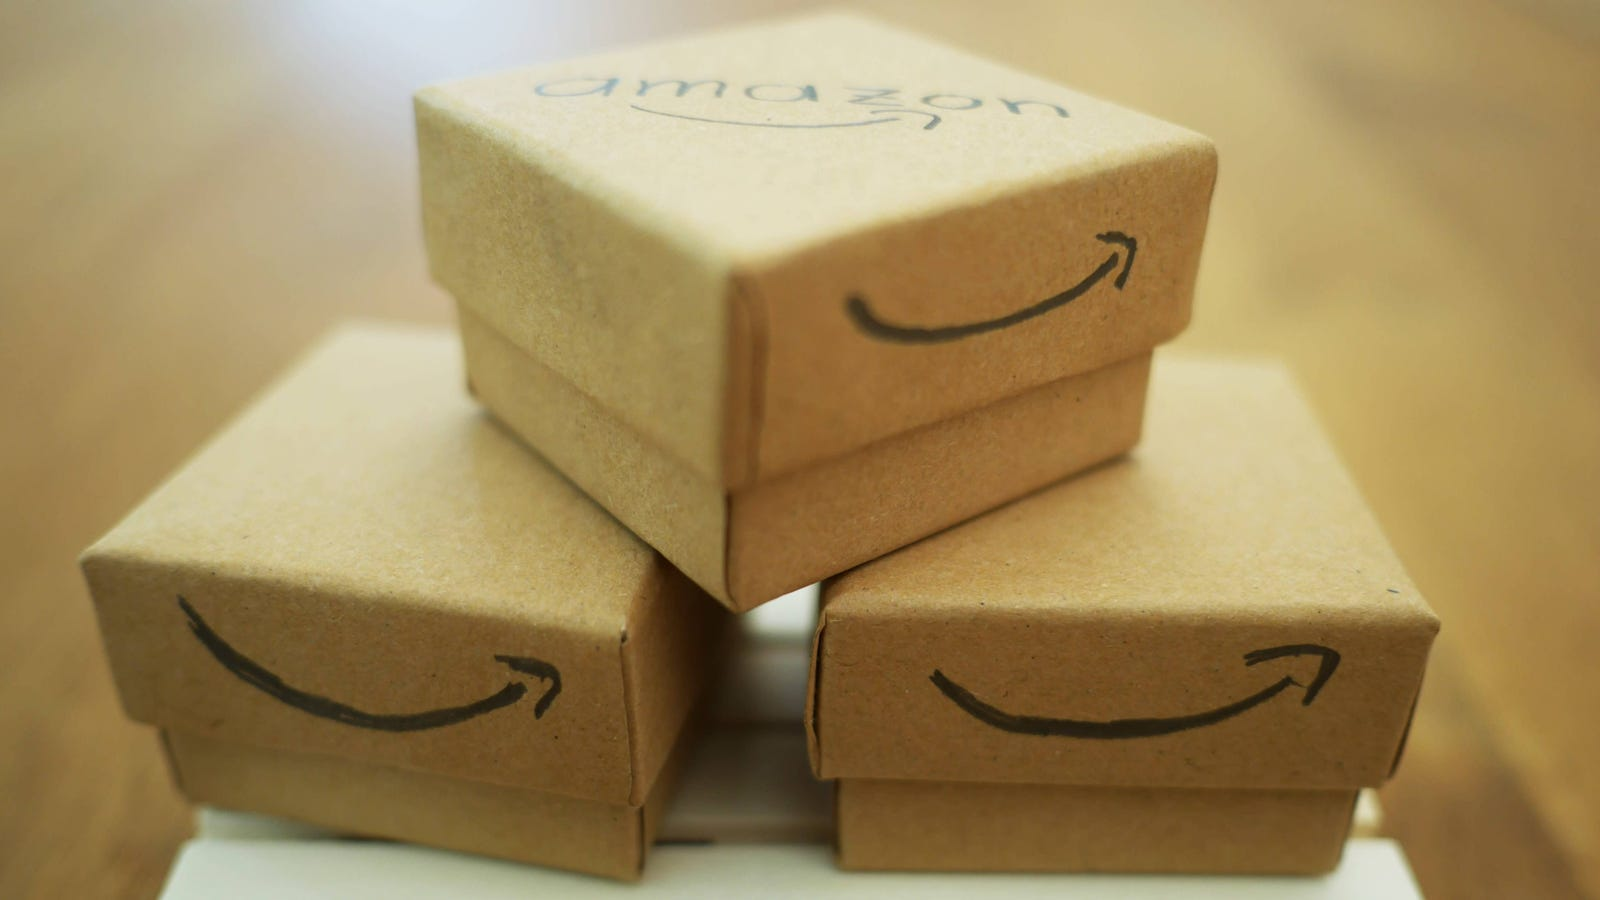 Have Kohl's or UPS Box and Ship Your Amazon Returns for Free